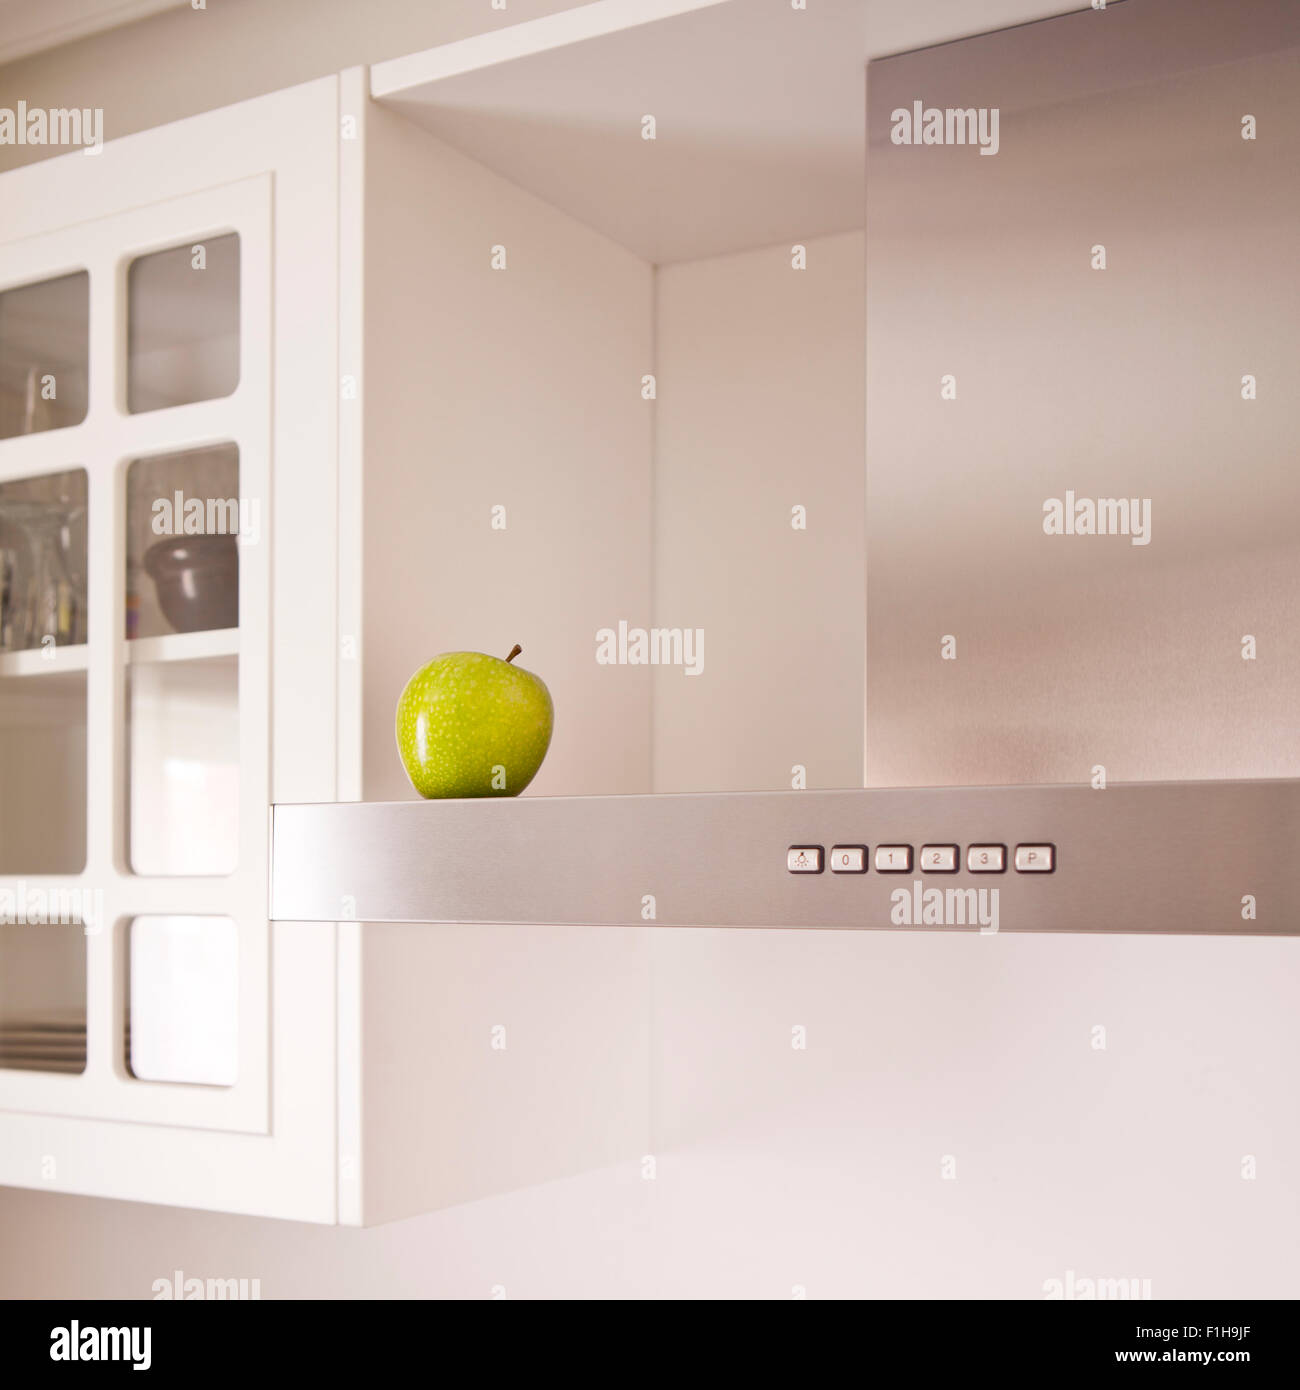 Green apple symbolizing cleanness in a modern white kitchen. Stock Photo